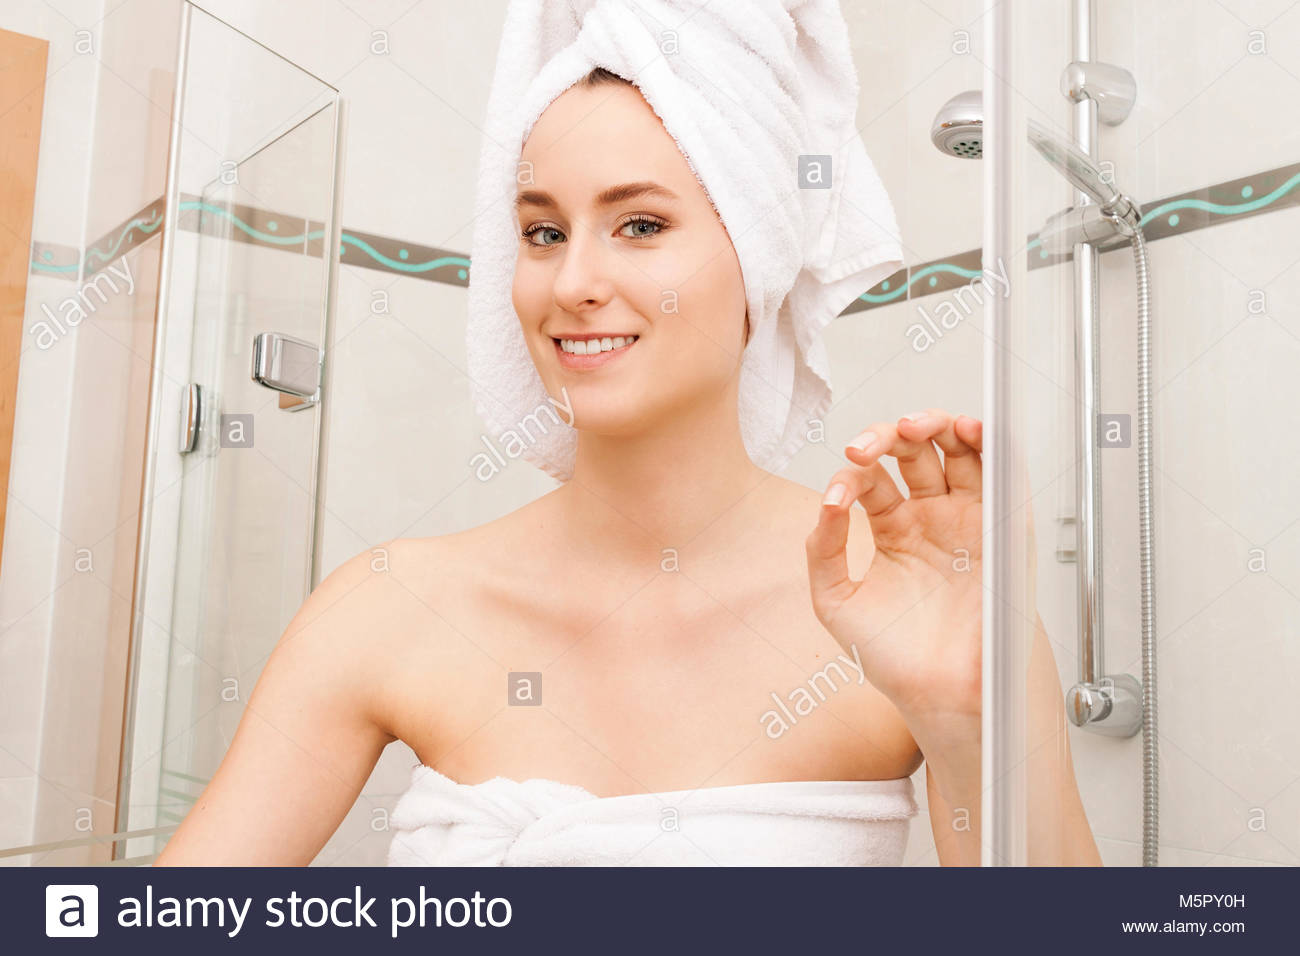 Smiling Fresh Woman Inside the Shower Cubicle - Stock Image